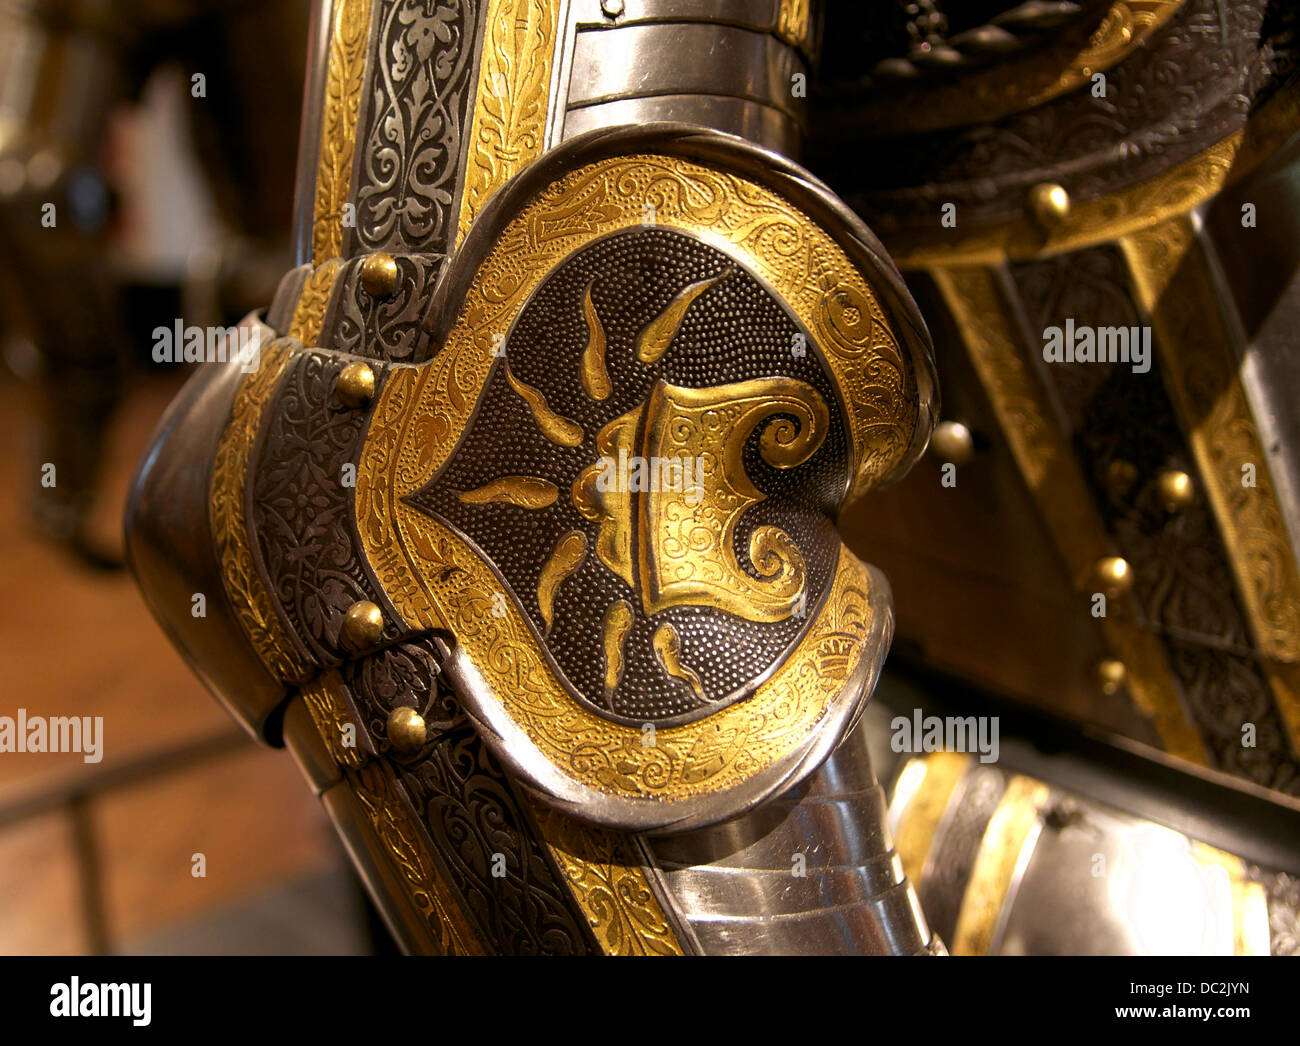 Couter of an Imperial armour, decorated with the Firesteel, one of the symbols of the House of Habsburg (see the - Stock Image